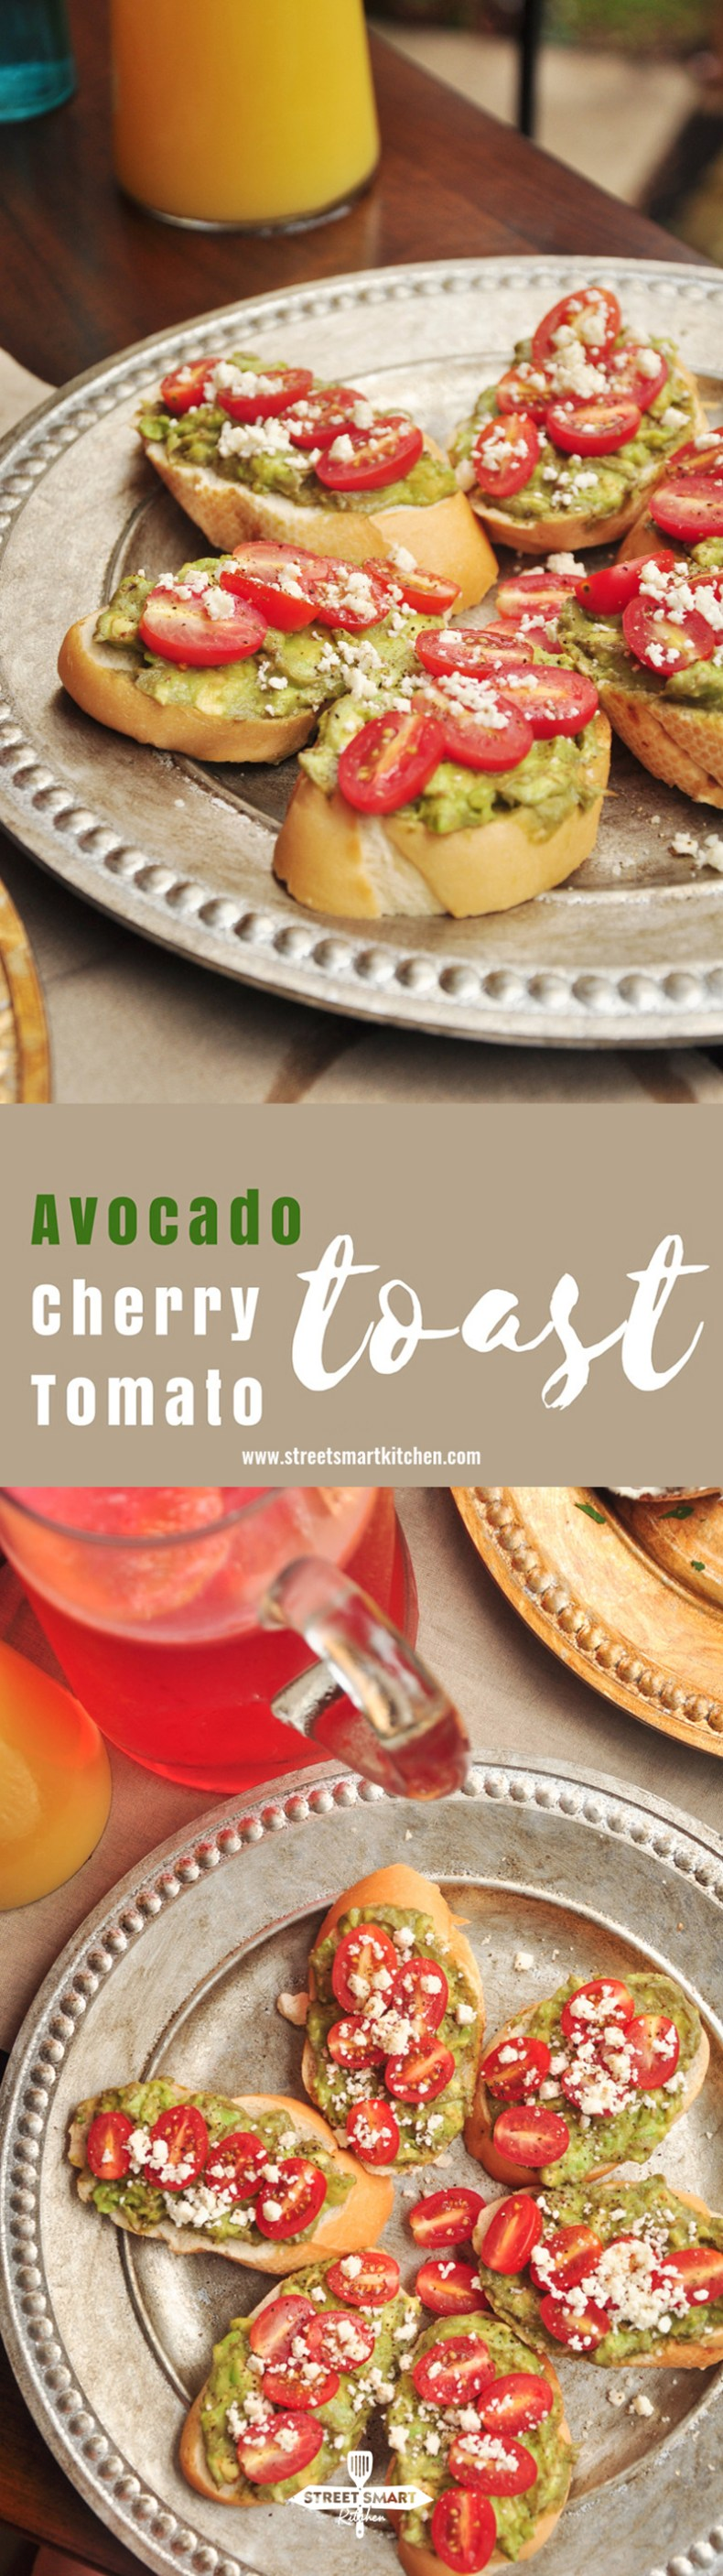 We've made an avocado toast before, with bacon and maple syrup. YASSSS! It's so yum! But I don't wake up and crave greasy stuff every morning. So today's avocado toast recipe is going to be a light and extremely healthy one. No cooking is required, just throw things together on toasted bread to make a beautiful mess.